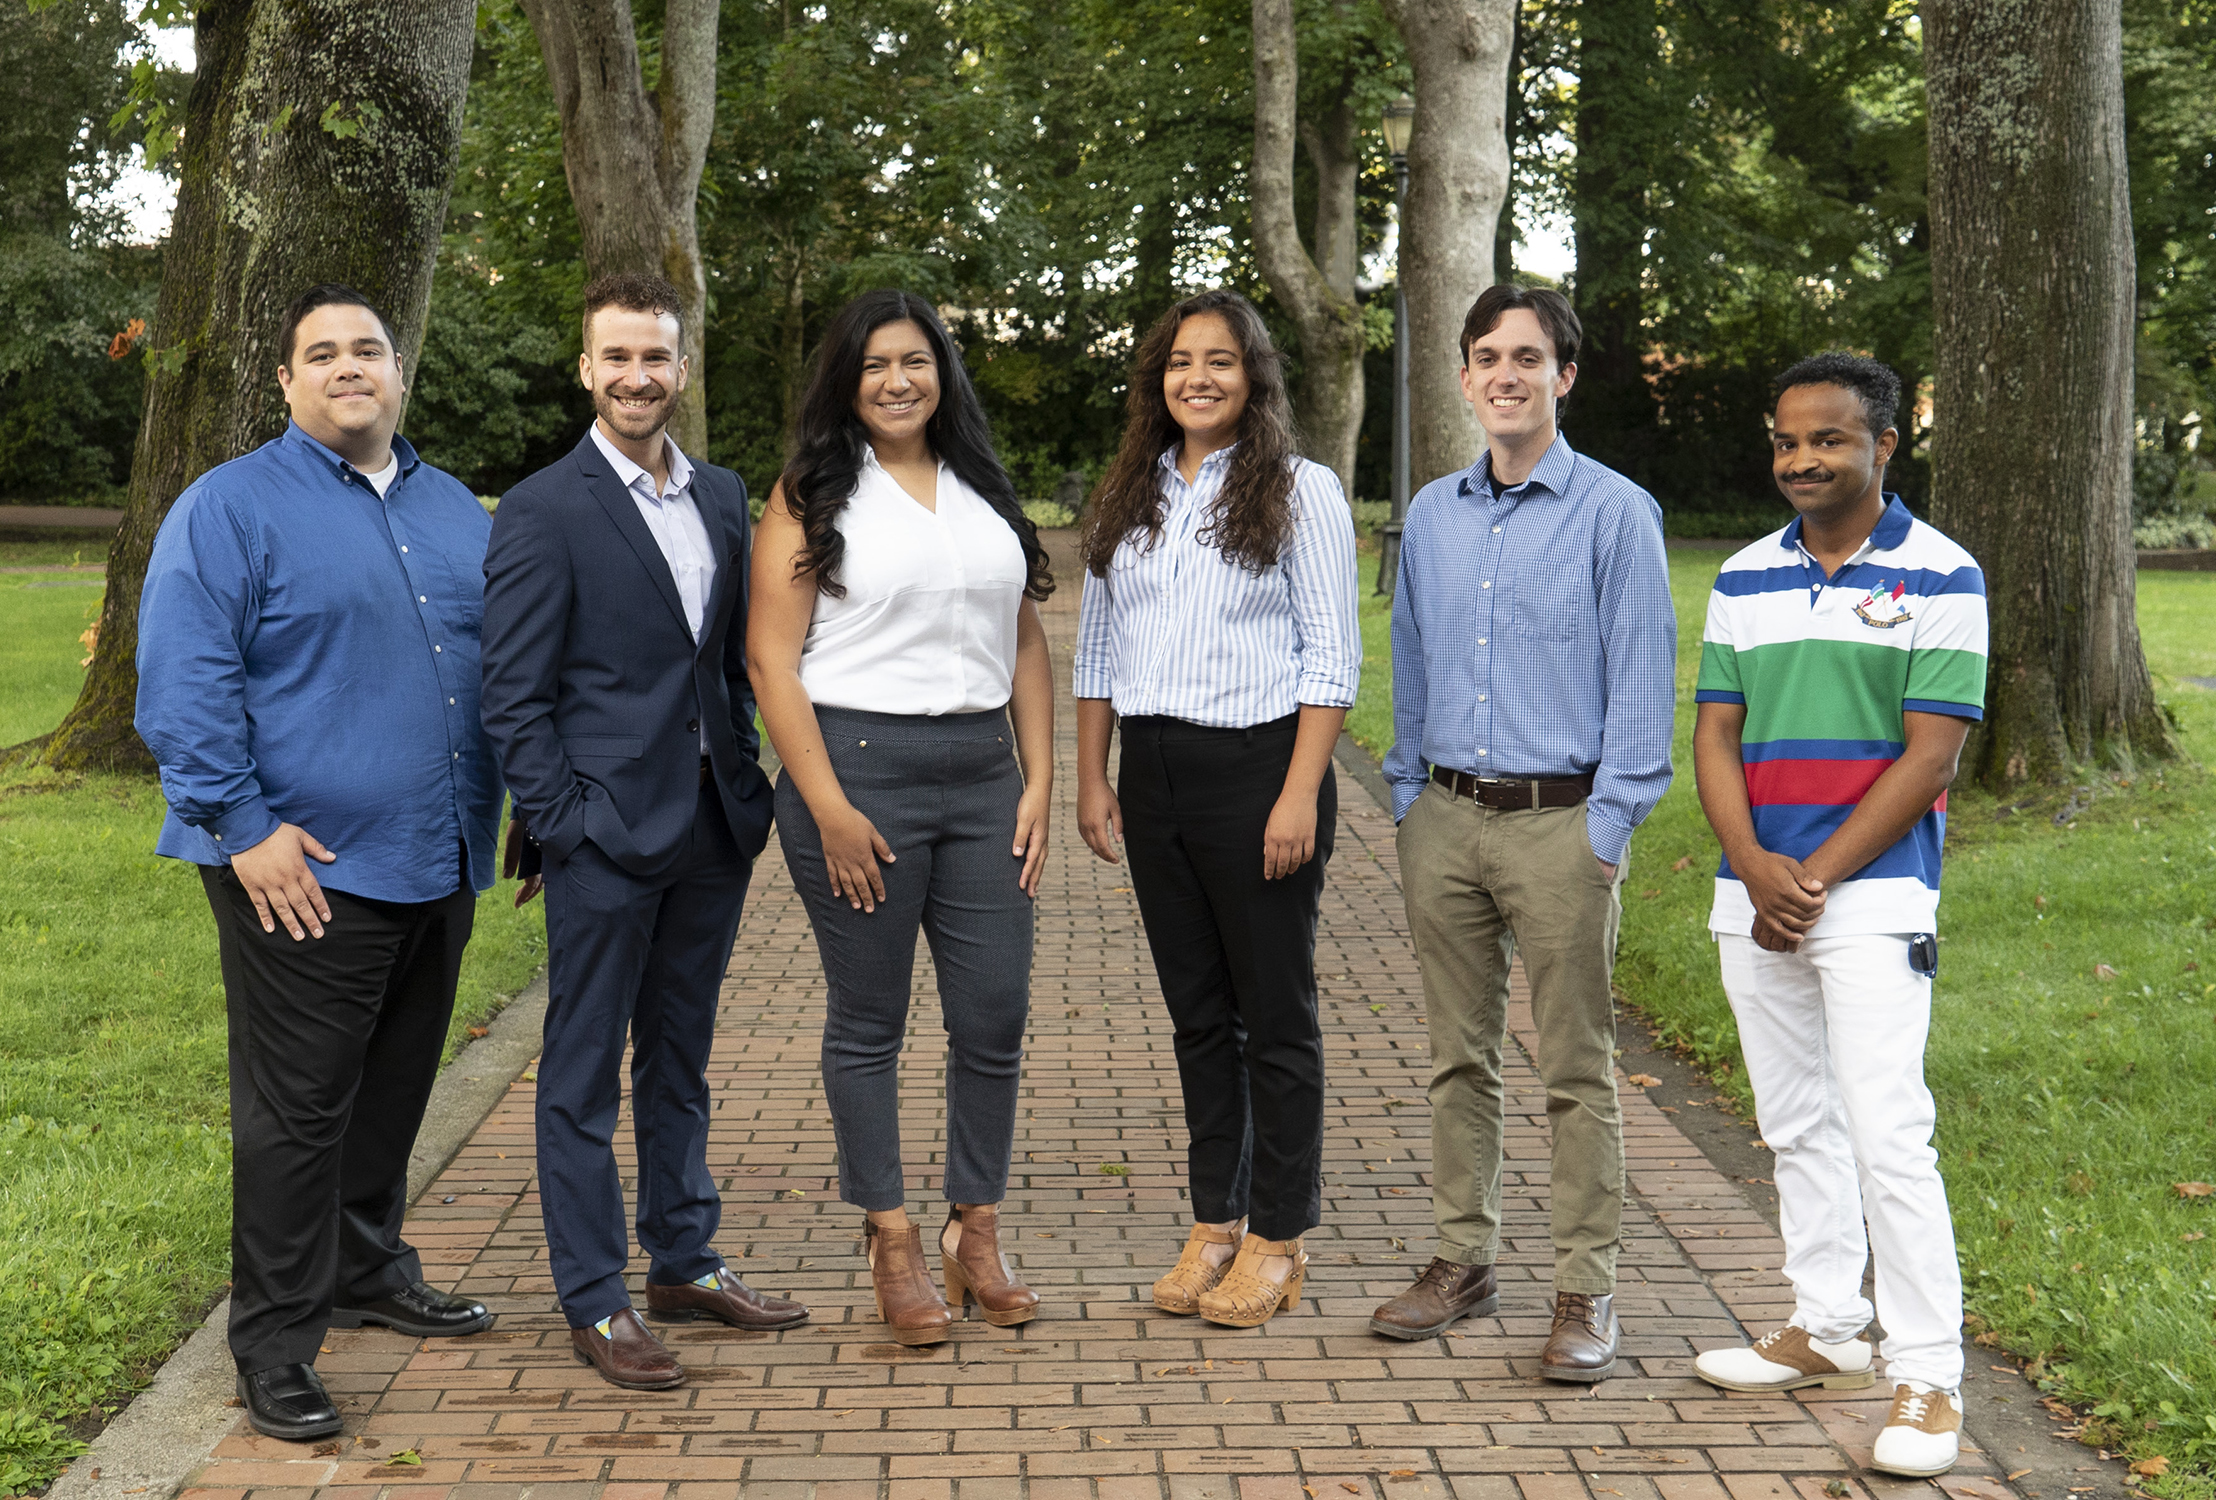 Six Western Admissions Counselors stand side-by-side smiling at the camera.